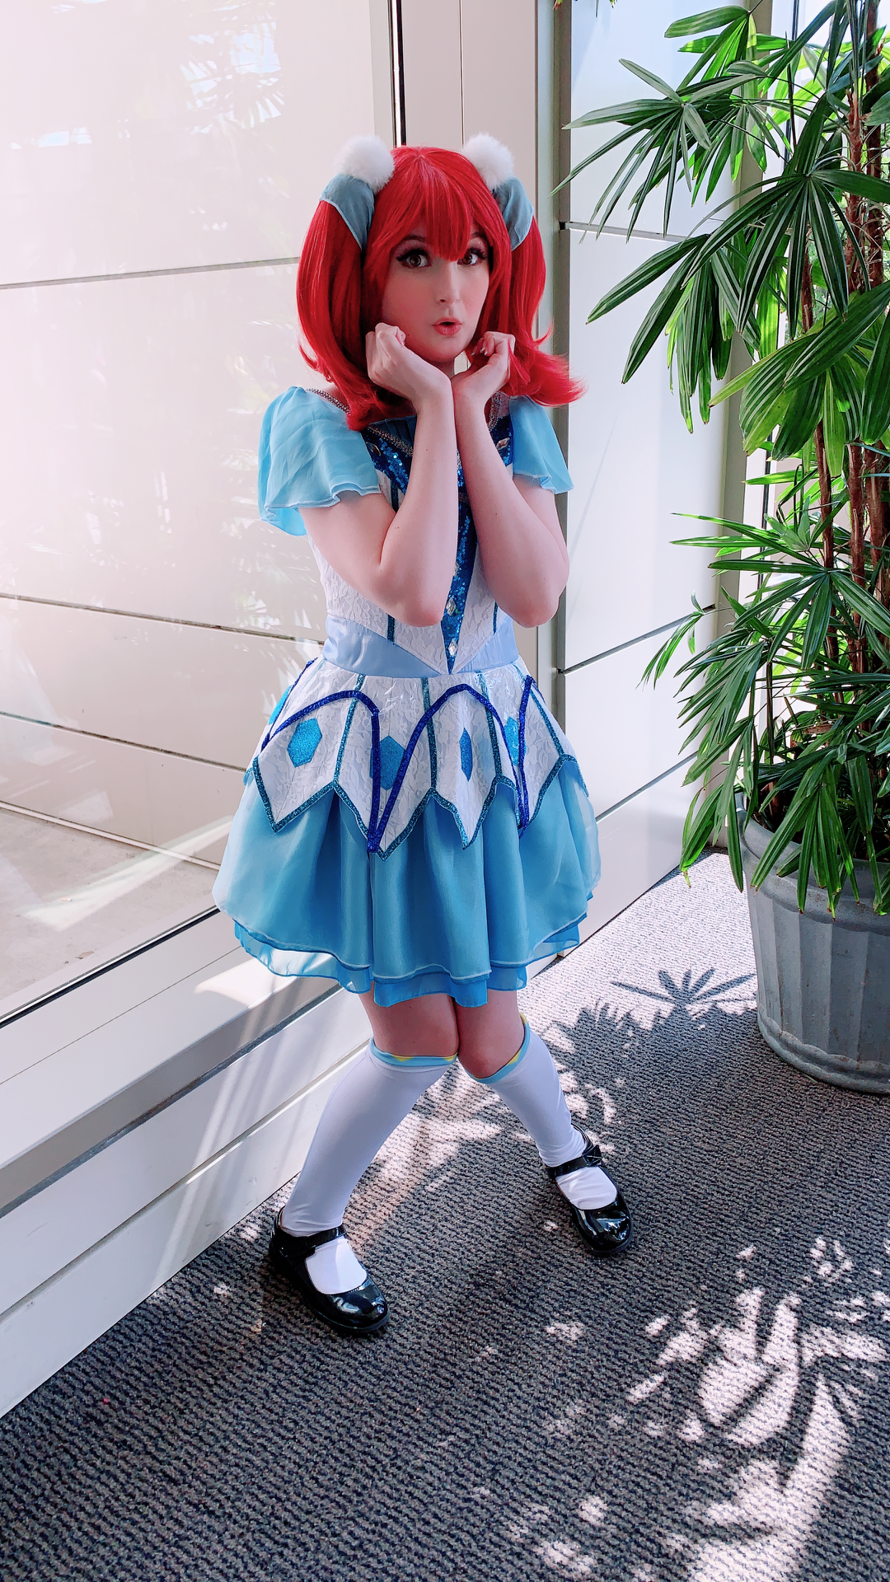 Hello there! I'm Morgan ite !